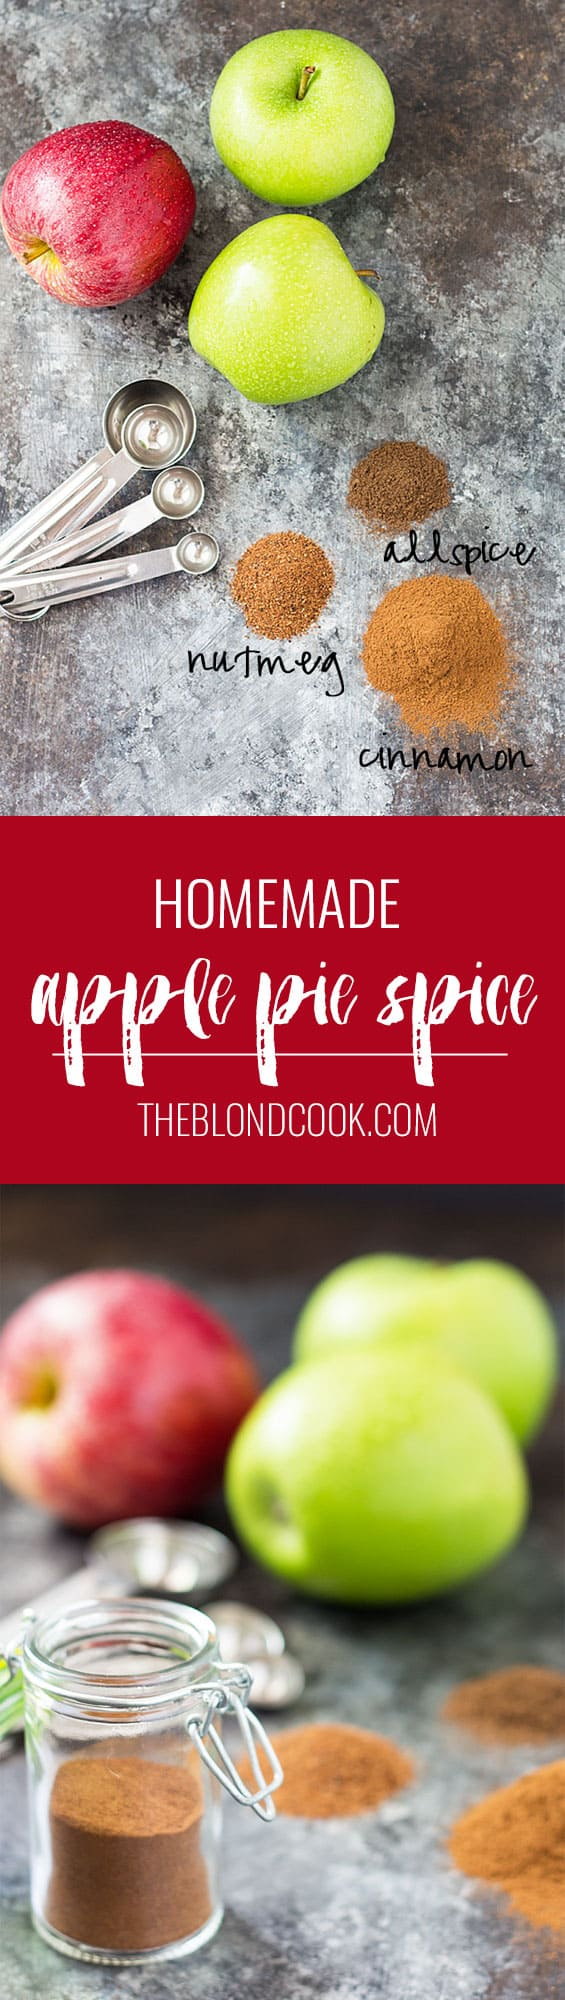 Two images of spices with fresh apples. Text in center says homemade apple pie spice.